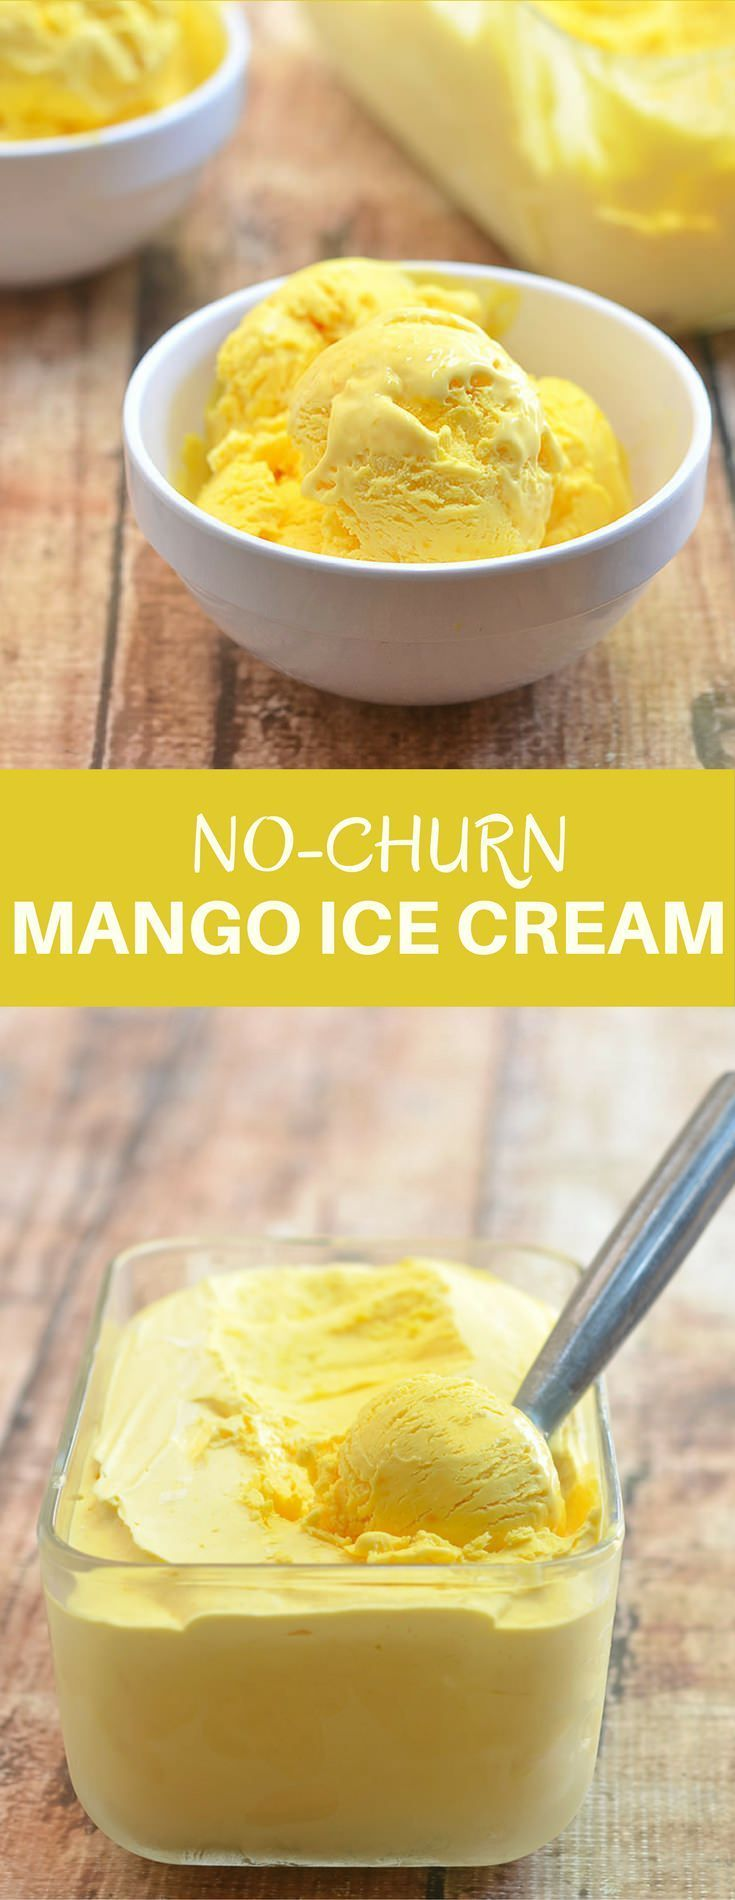 This mango ice cream is all about the fresh flavors of summer! Rich, silky and with intense mango flavor, it will very well be your next sweet addiction. No churn and ice cream maker needed, and only three ingredients!